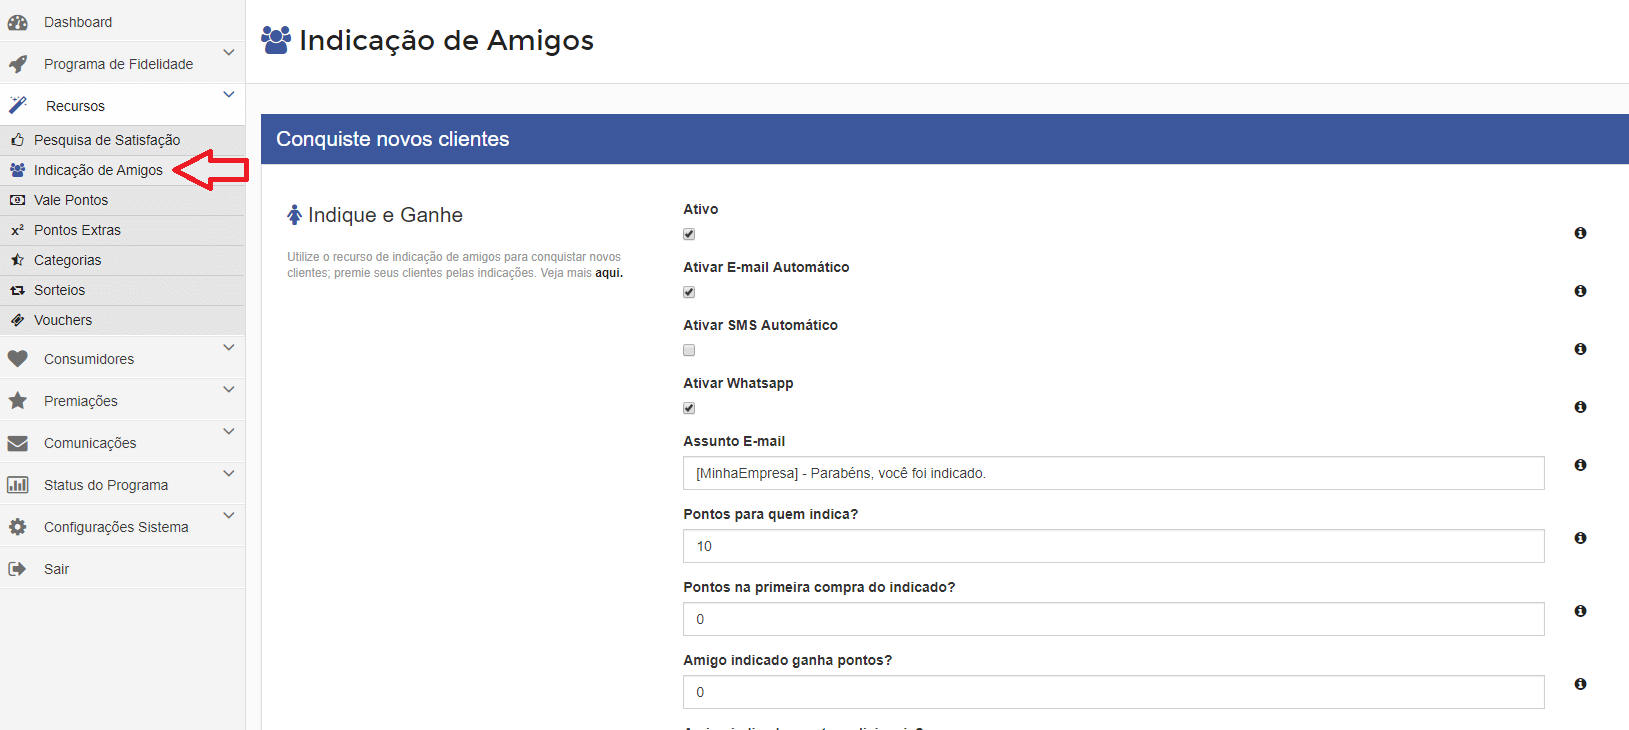 Indicacoes_Amigos.png